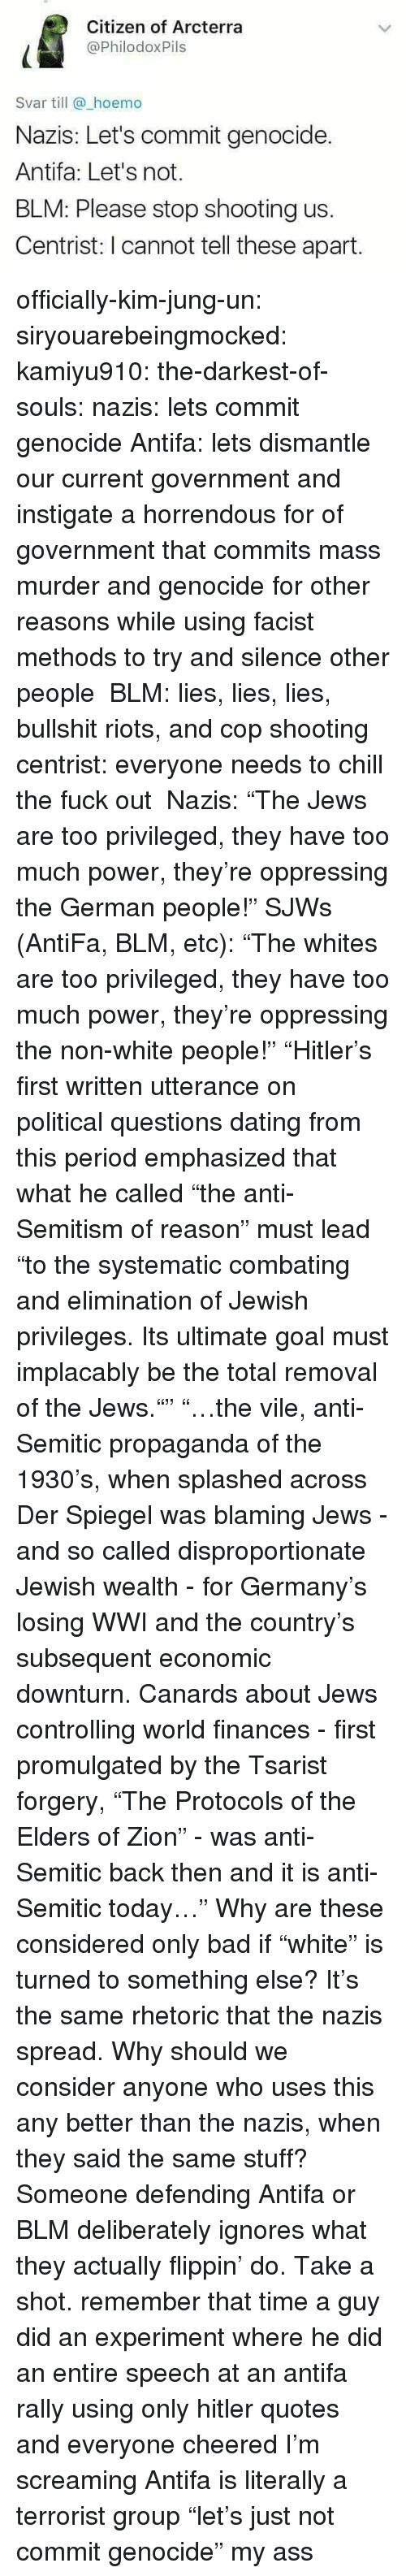 """privileges: Citizen of Arcterra  @PhilodoxPils  Svar till @_hoemo  Nazis: Let's commit genocide.  Antifa: Let's not.  BLM: Please stop shooting us.  Centrist: I cannot tell these apart officially-kim-jung-un:  siryouarebeingmocked:  kamiyu910:  the-darkest-of-souls:  nazis: lets commit genocide Antifa: lets dismantle our current government and instigate a horrendous for of government that commits mass murder and genocide for other reasons while using facist methods to try and silence other people BLM: lies, lies, lies, bullshit riots, and cop shooting centrist: everyone needs to chill the fuck out  Nazis:""""The Jews are too privileged, they have too much power, they're oppressing the German people!"""" SJWs (AntiFa, BLM, etc):""""The whites are too privileged, they have too much power, they're oppressing the non-white people!""""   """"Hitler's first written utterance on political questions dating from this period emphasized that what he called """"the anti-Semitism of reason"""" must lead """"to the systematic combating and elimination of Jewish privileges. Its ultimate goal must implacably be the total removal of the Jews."""""""" """"…the vile, anti-Semitic propaganda of the 1930's, when splashed across Der Spiegel was blaming Jews - and so called disproportionate Jewish wealth - for Germany's losing WWI and the country's subsequent economic downturn. Canards about Jews controlling world finances - first promulgated by the Tsarist forgery, """"The Protocols of the Elders of Zion"""" - was anti-Semitic back then and it is anti-Semitic today…"""" Why are these considered only bad if""""white"""" is turned to something else? It's the same rhetoric that the nazis spread. Why should we consider anyone who uses this any better than the nazis, when they said the same stuff?  Someone defending Antifa or BLM deliberately ignores what they actually flippin' do. Take a shot.  remember that time a guy did an experiment where he did an entire speech at an antifa rally using only hitler quotes and everyone cheered  I'm scr"""